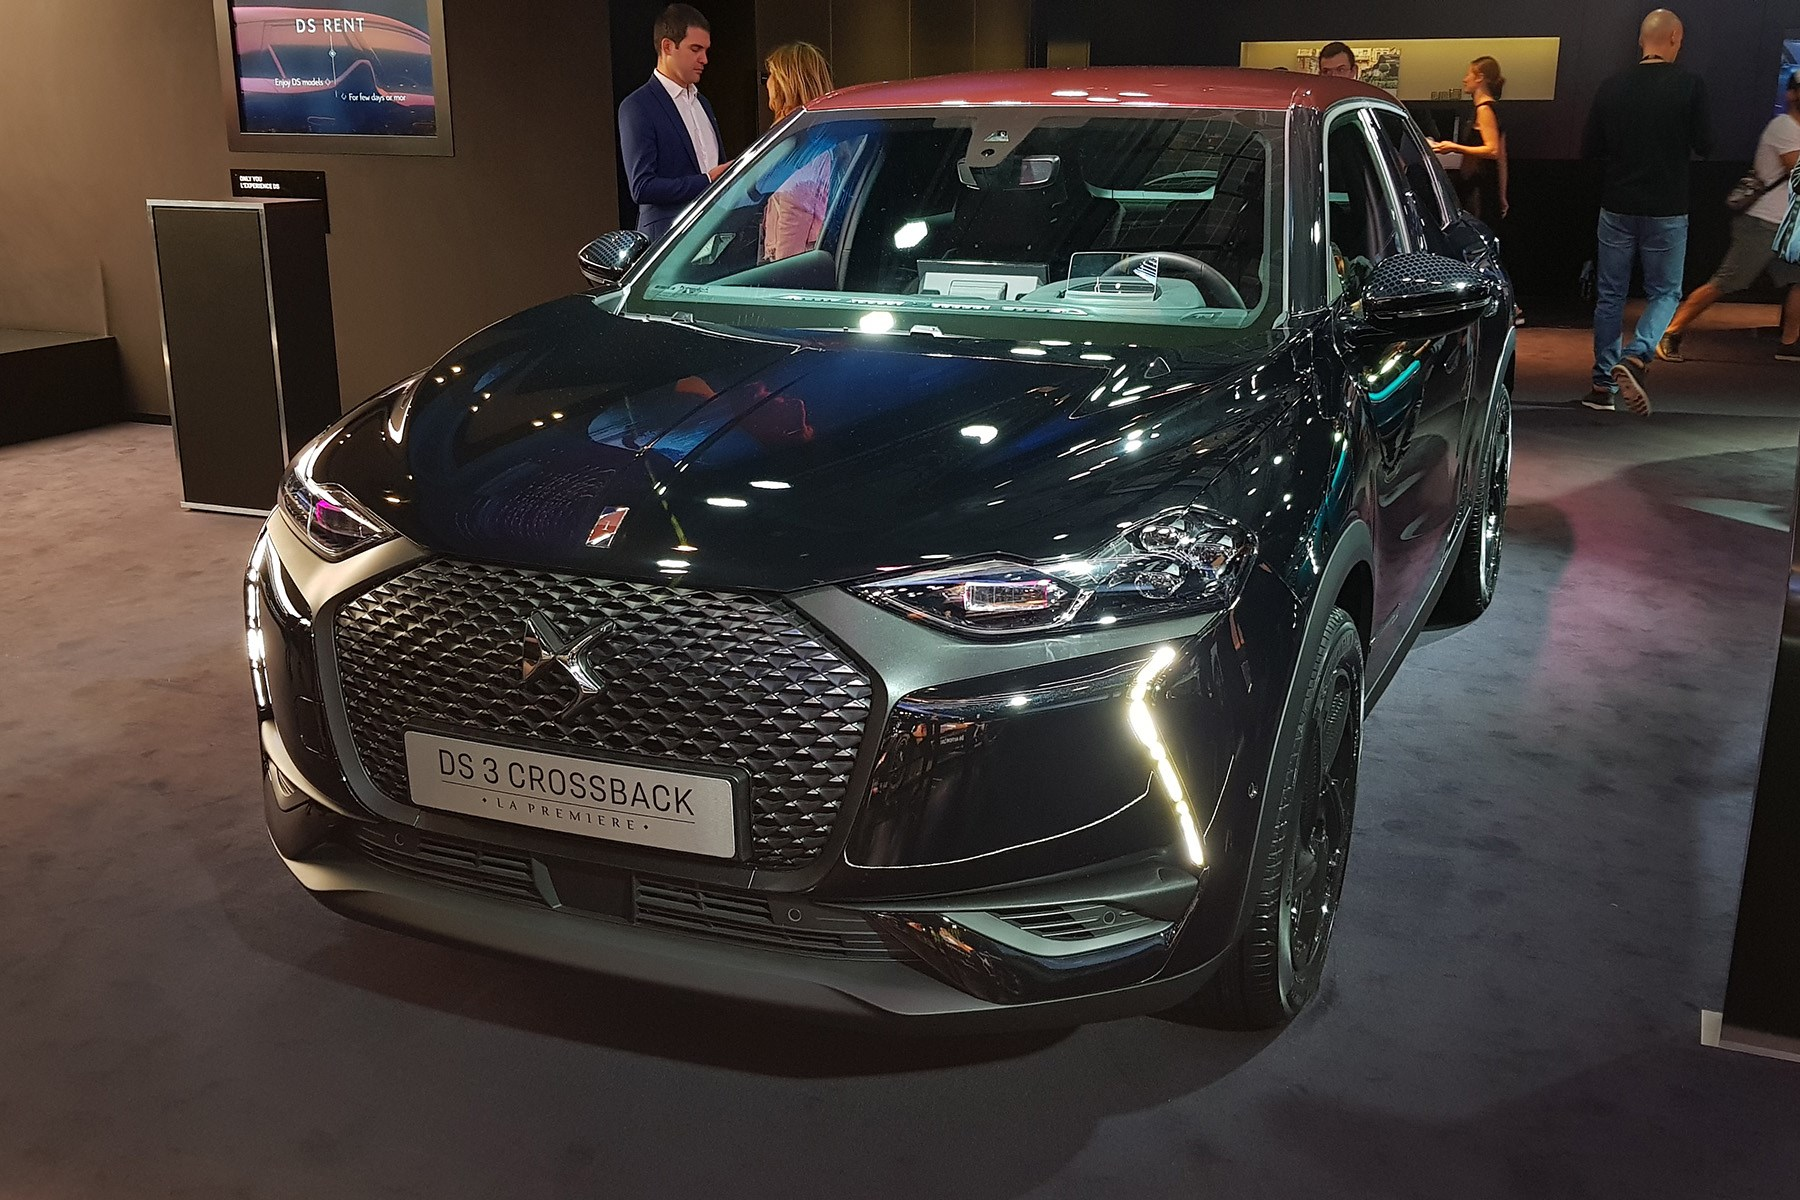 DS3 Crossback Paris